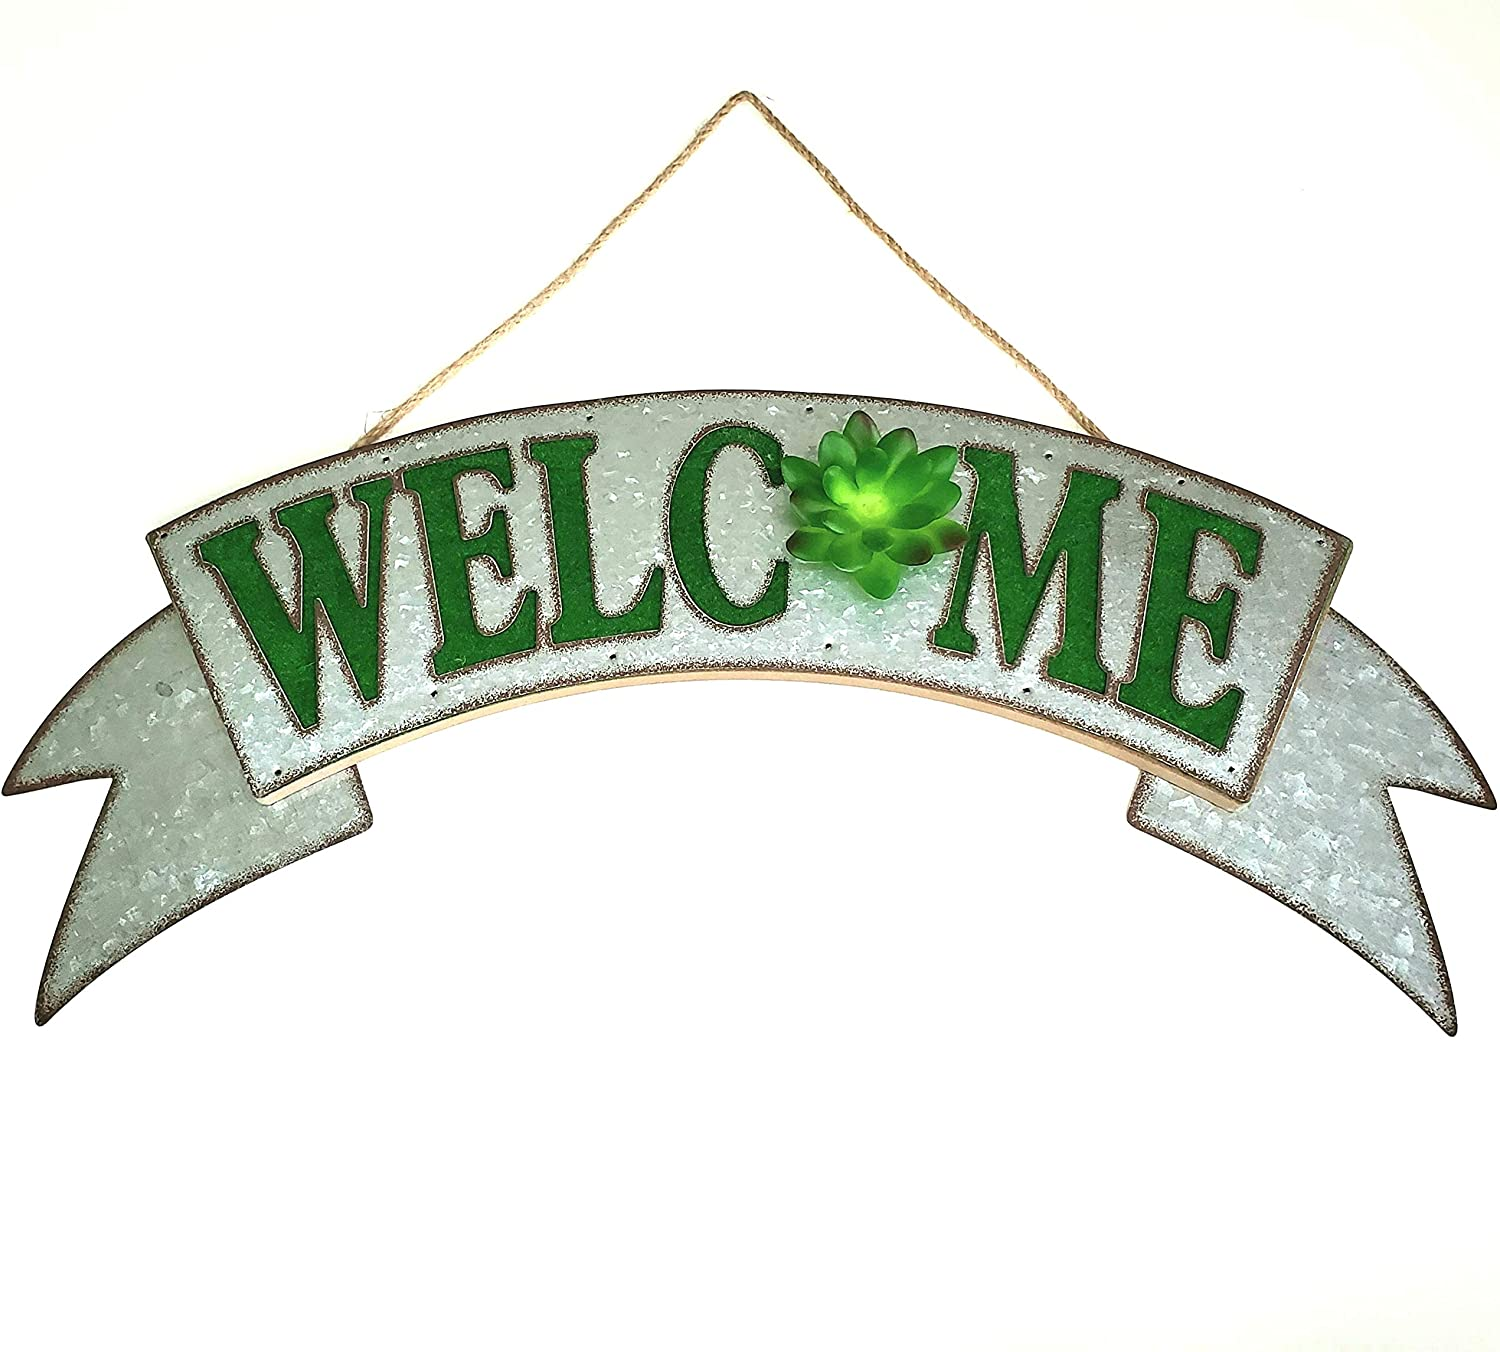 Rustic Farmhouse Welcome Sign Galvanized Metal Sign Green Lettering with 3-D Green Succulent Accent for Entrance, Porch, Patio, Wall Decor, Indoor/Outdoor